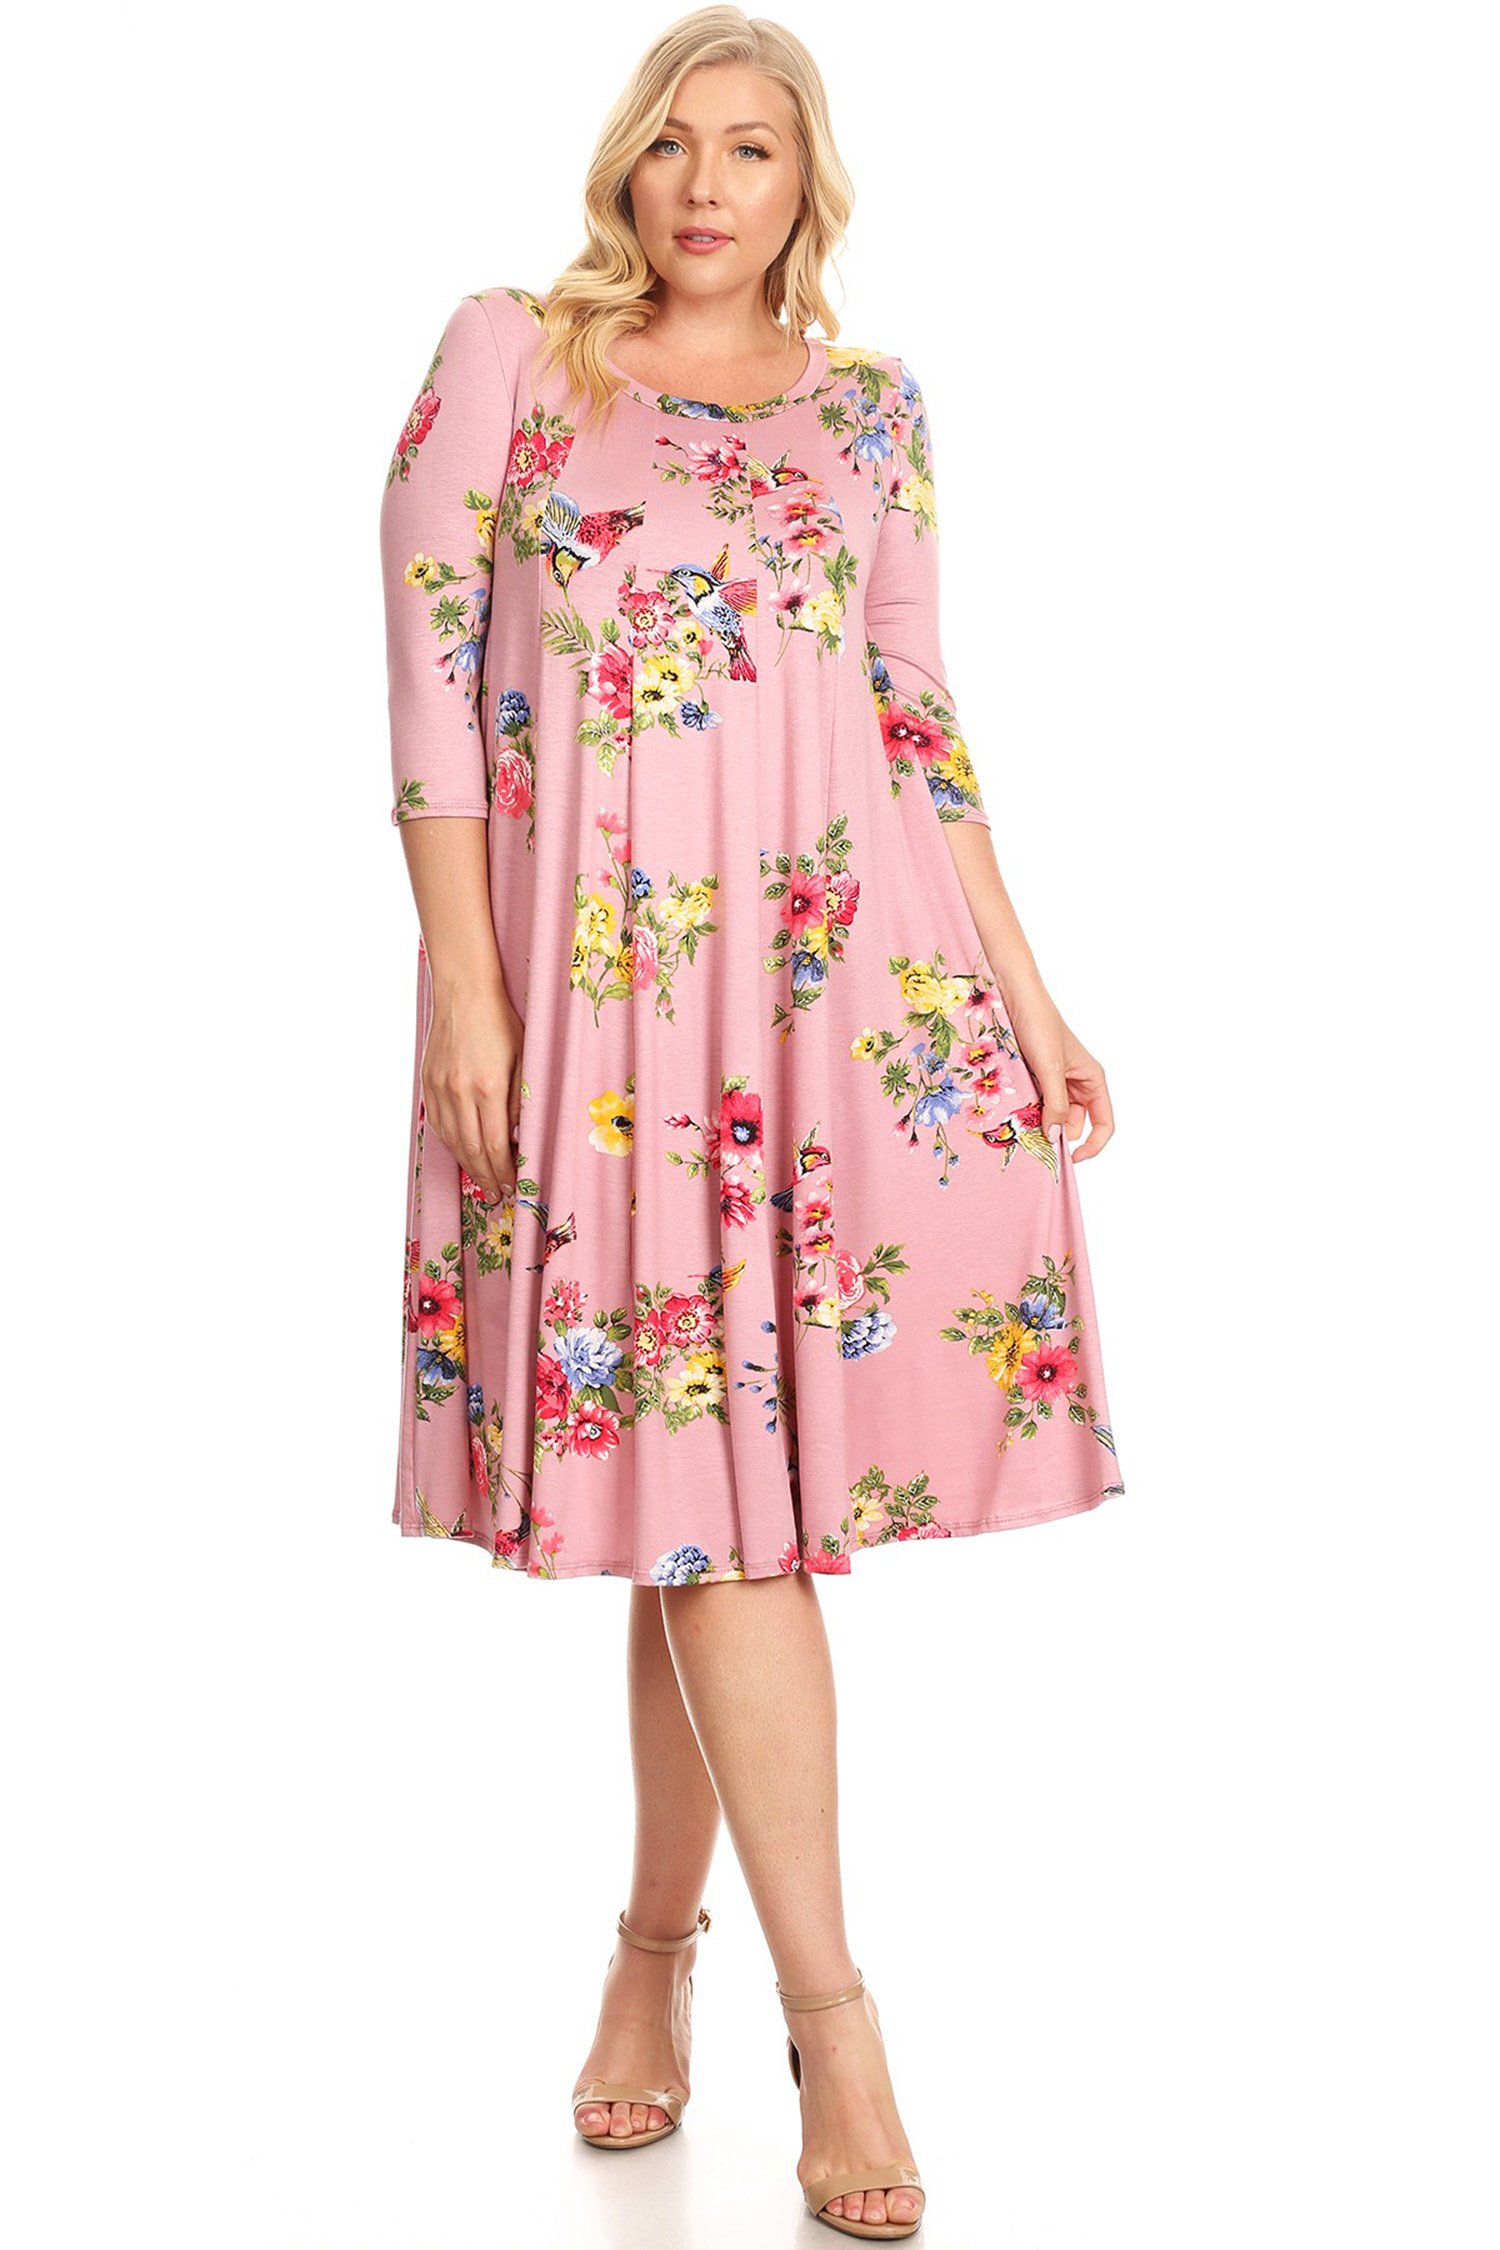 Plus Size Women's 3/4 Sleeve Printed Midi Dress